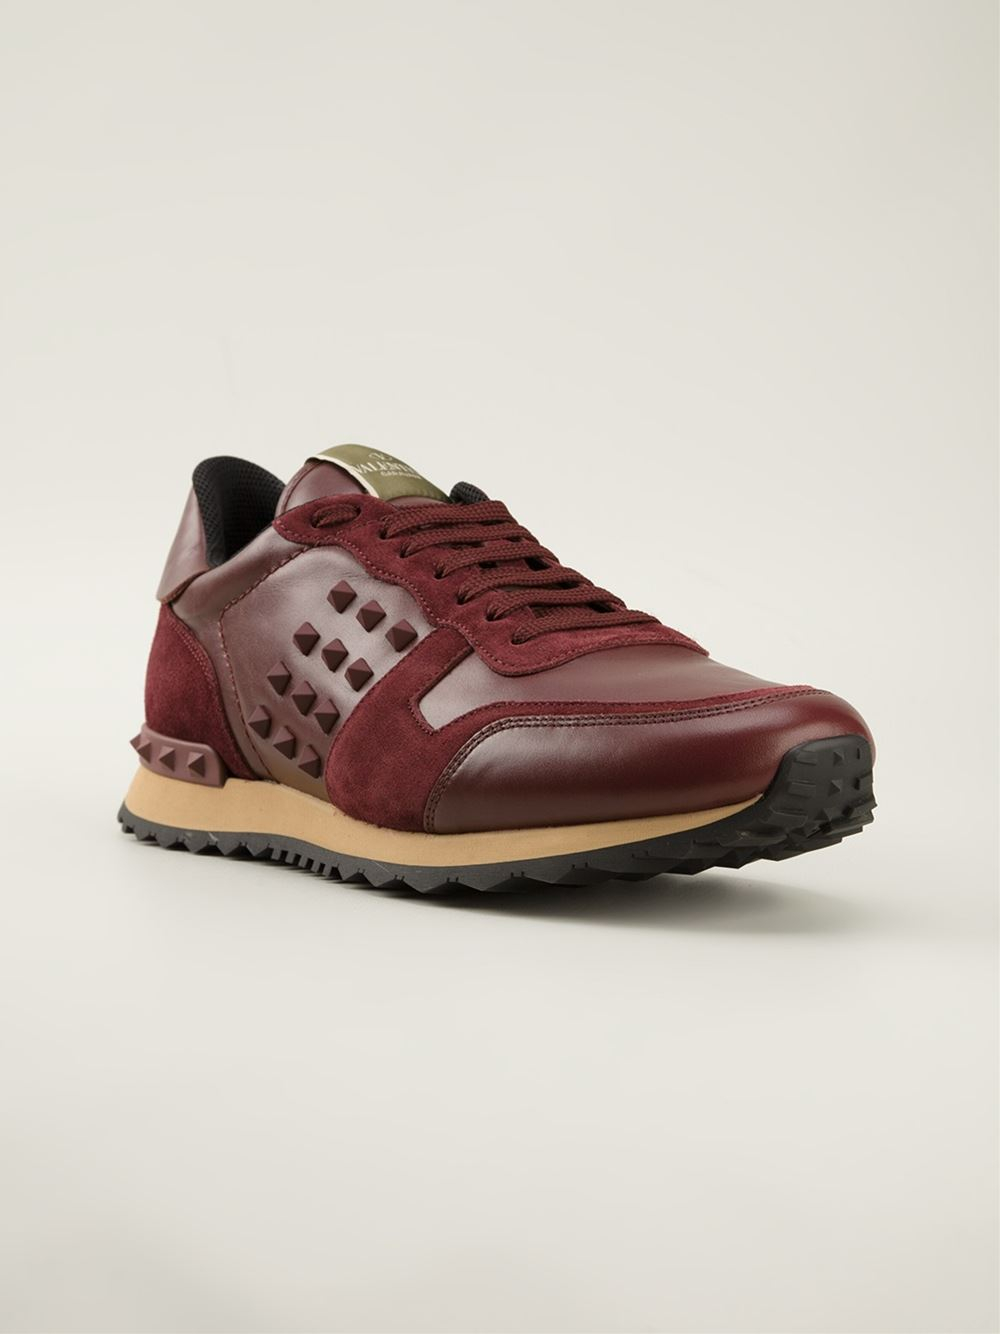 Valentino Rockstud Sneakers In Red For Men Lyst